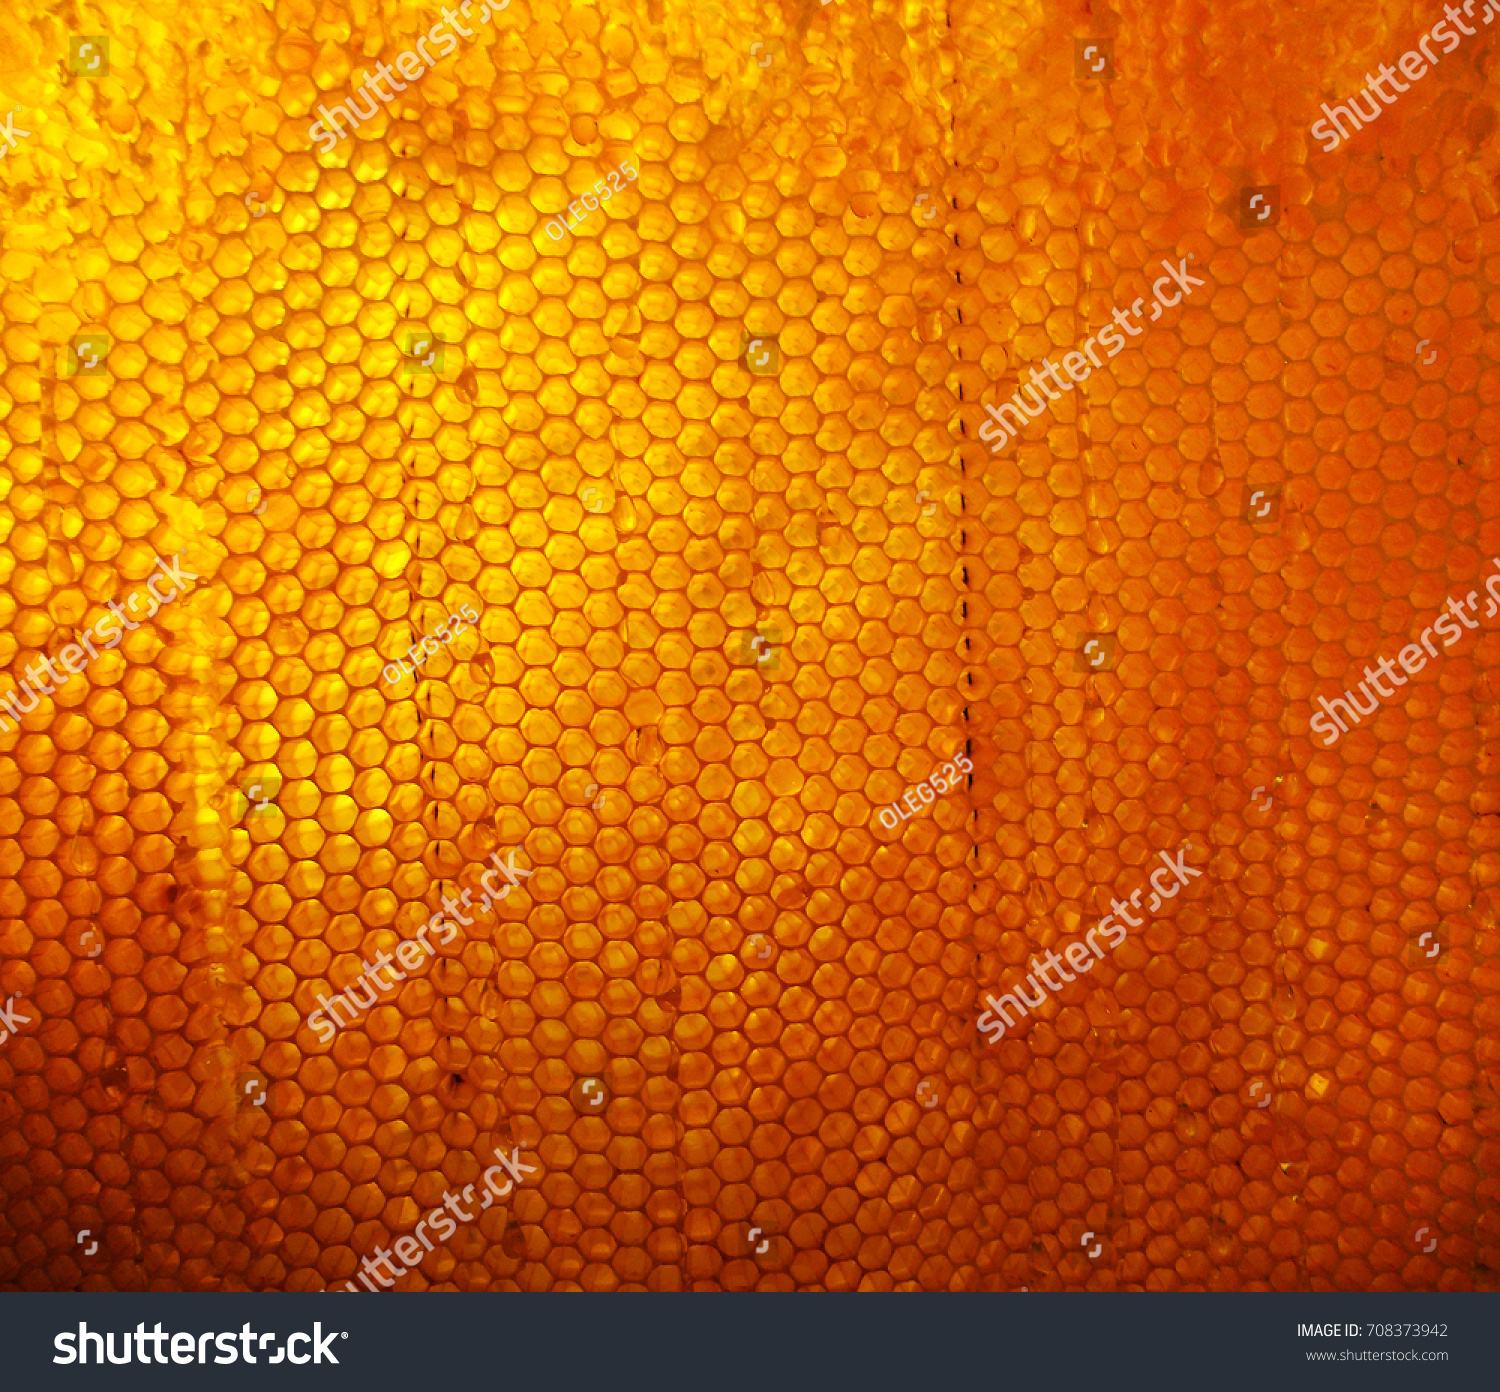 Background Hexagon Texture Wax Honeycomb Bee Stock Photo 708373942 ...